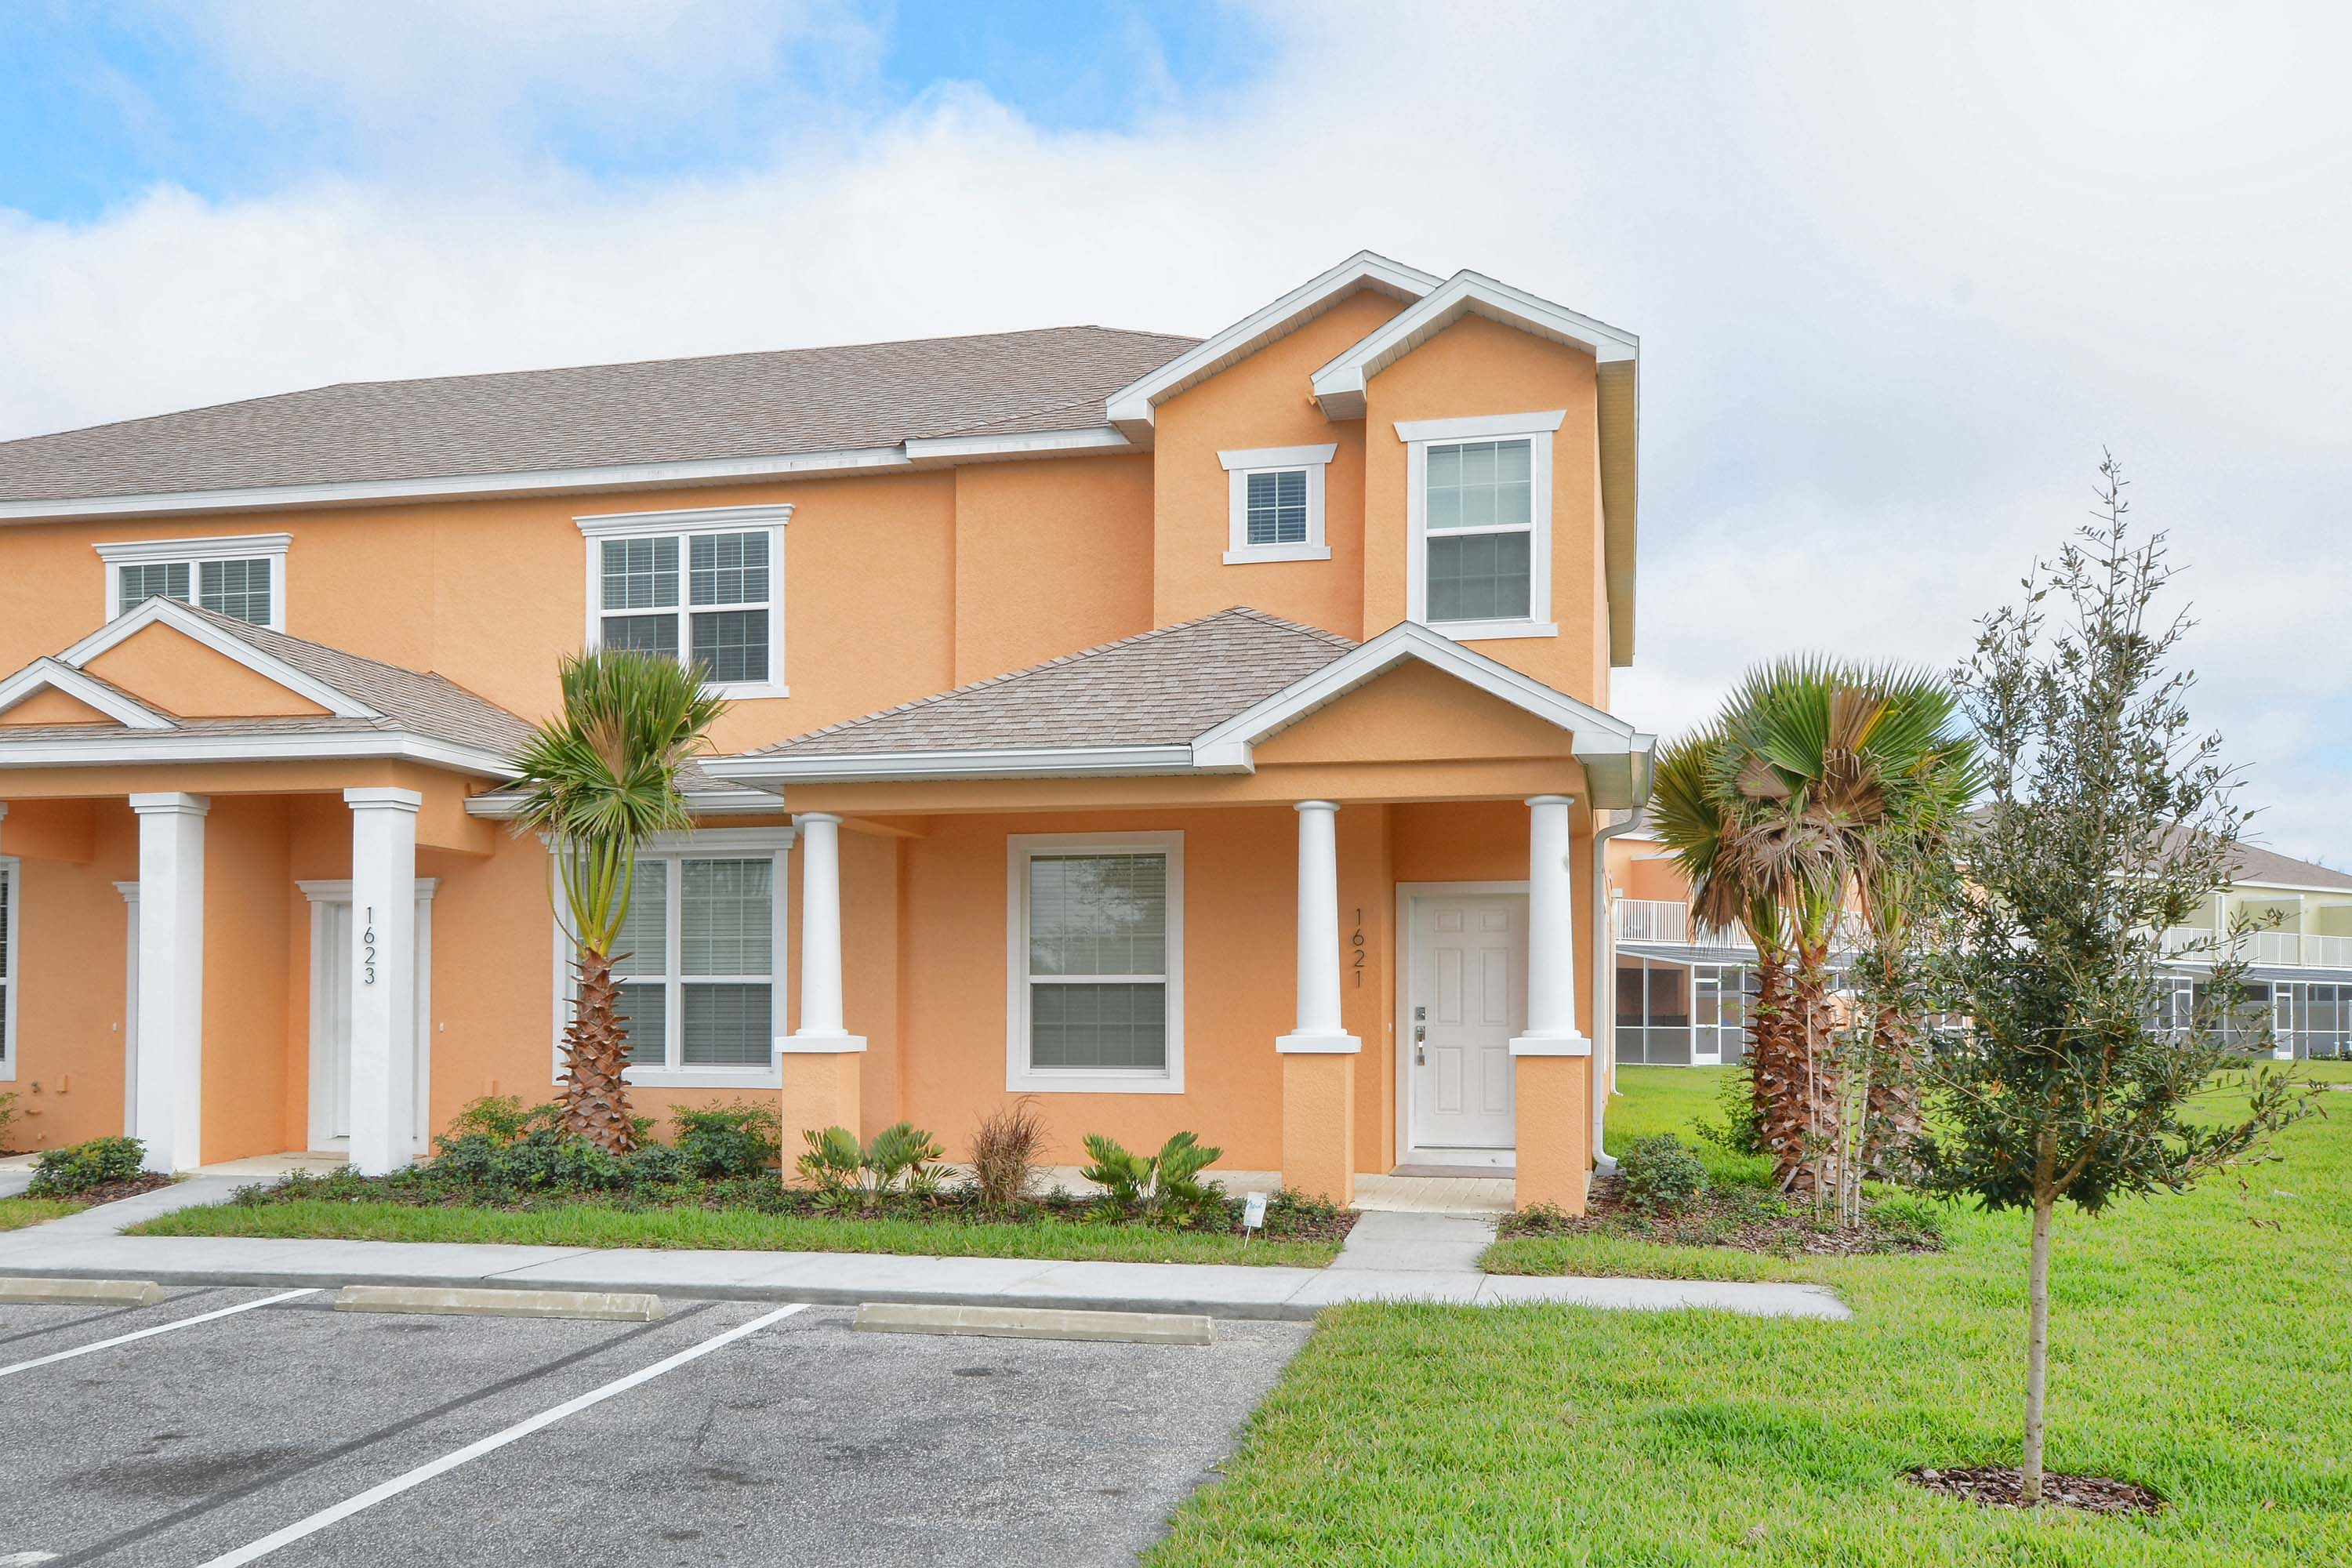 Craigslist Clermont Fl Apartments